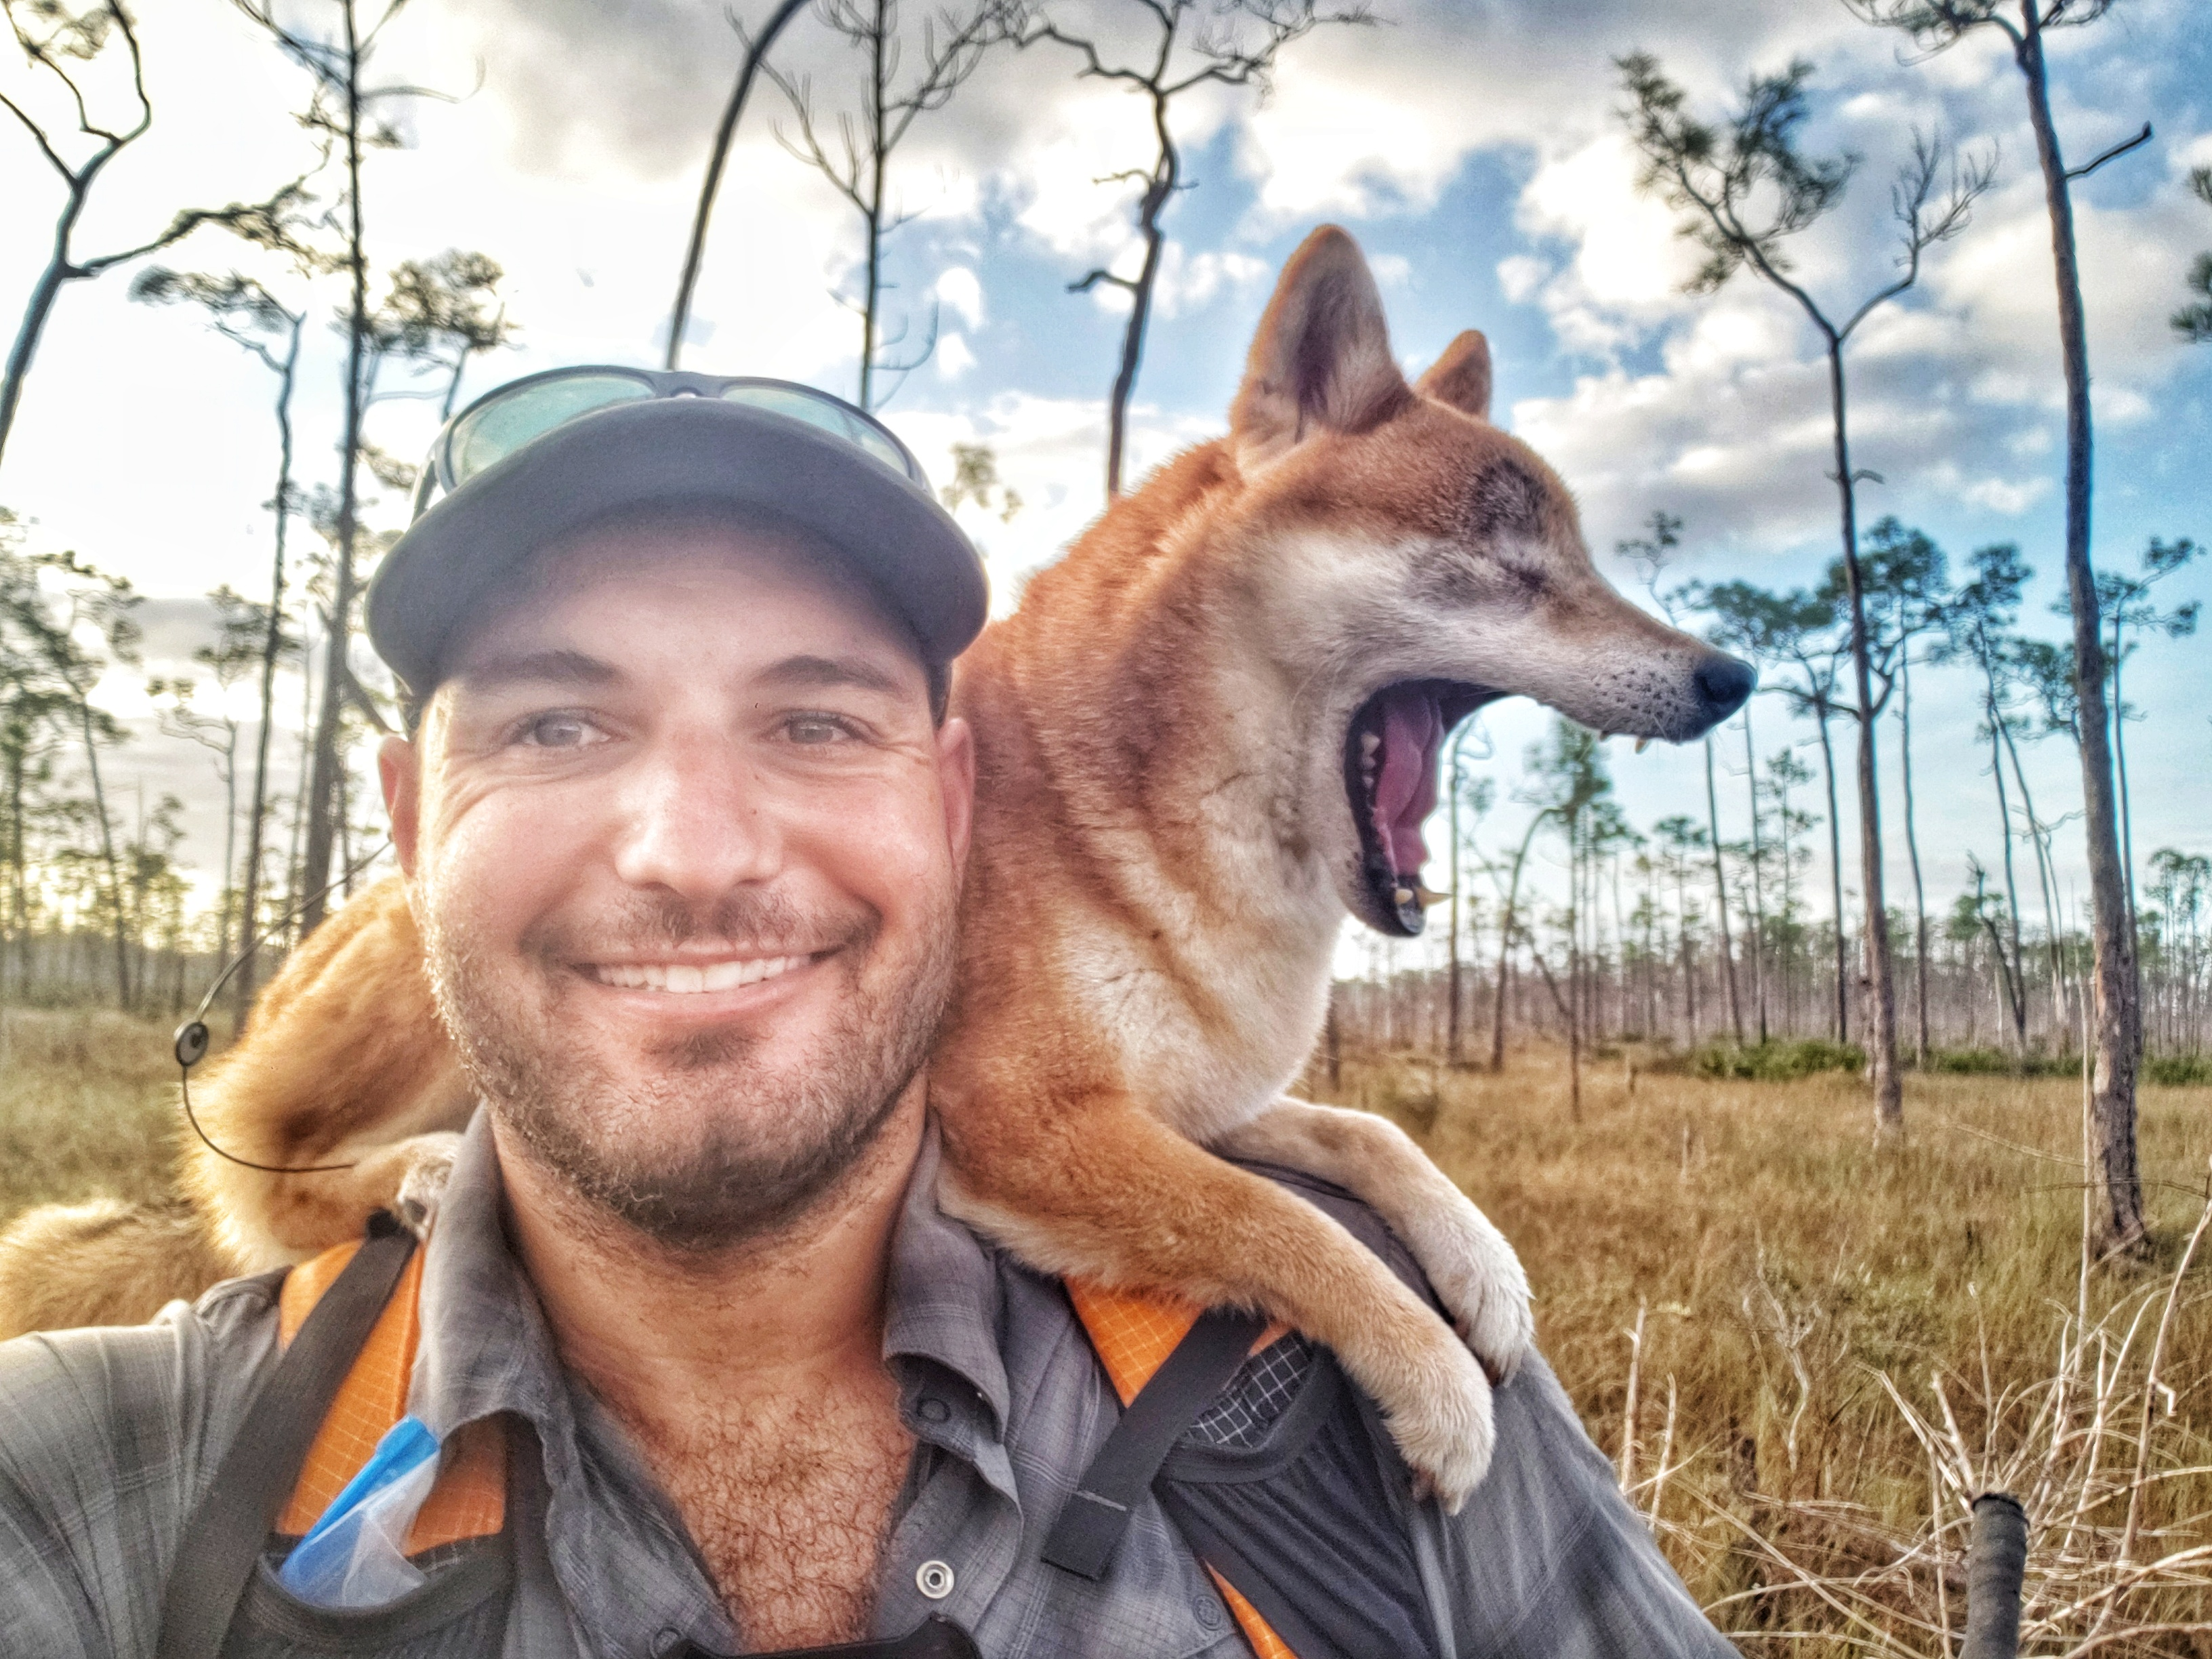 Thru-Hiking the 1,100-Mile Florida Trail With My Blind Dog - The Trek